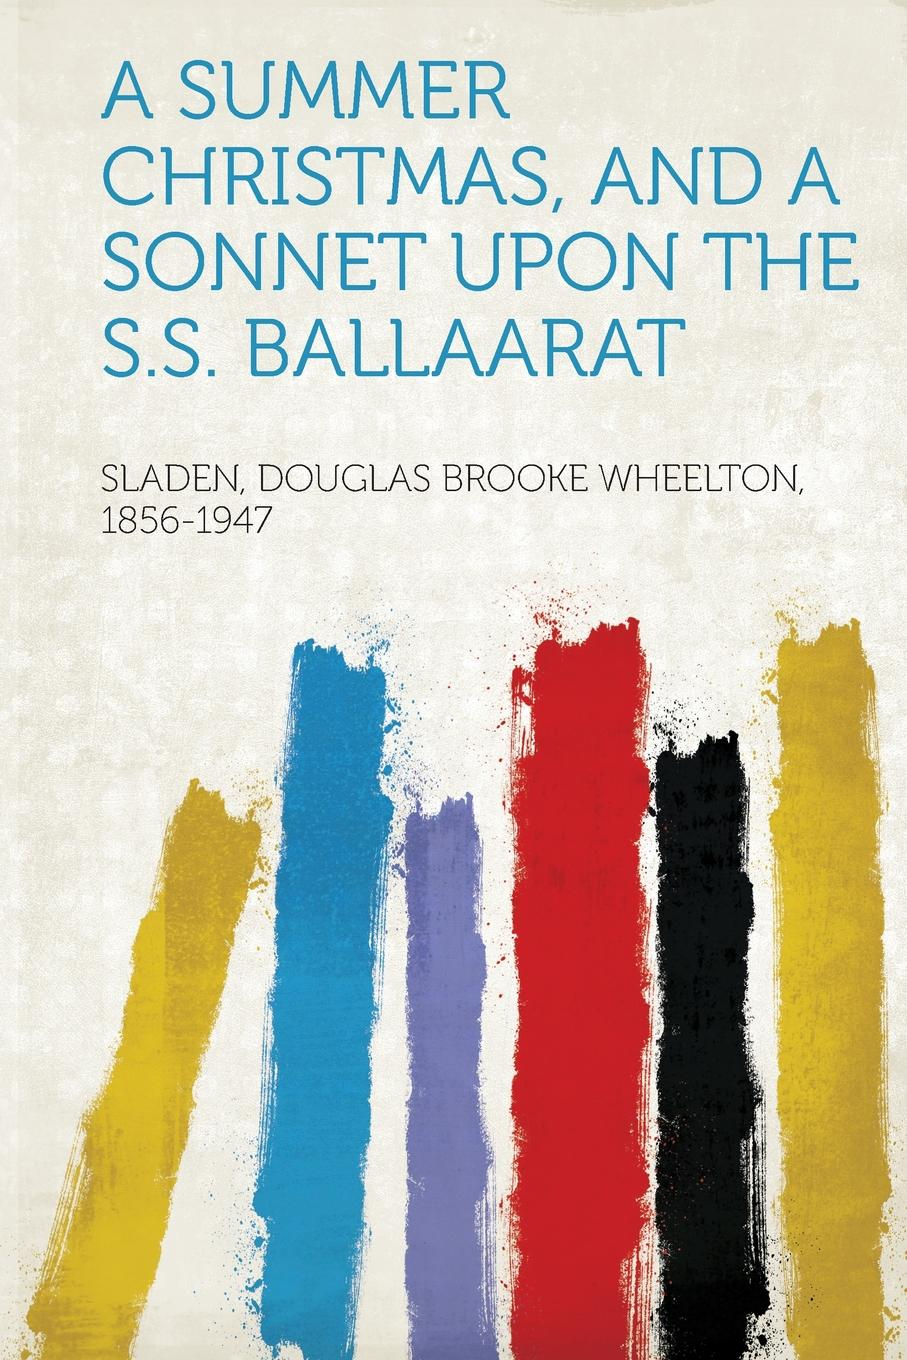 A Summer Christmas, and A Sonnet Upon the S.S. Ballaarat